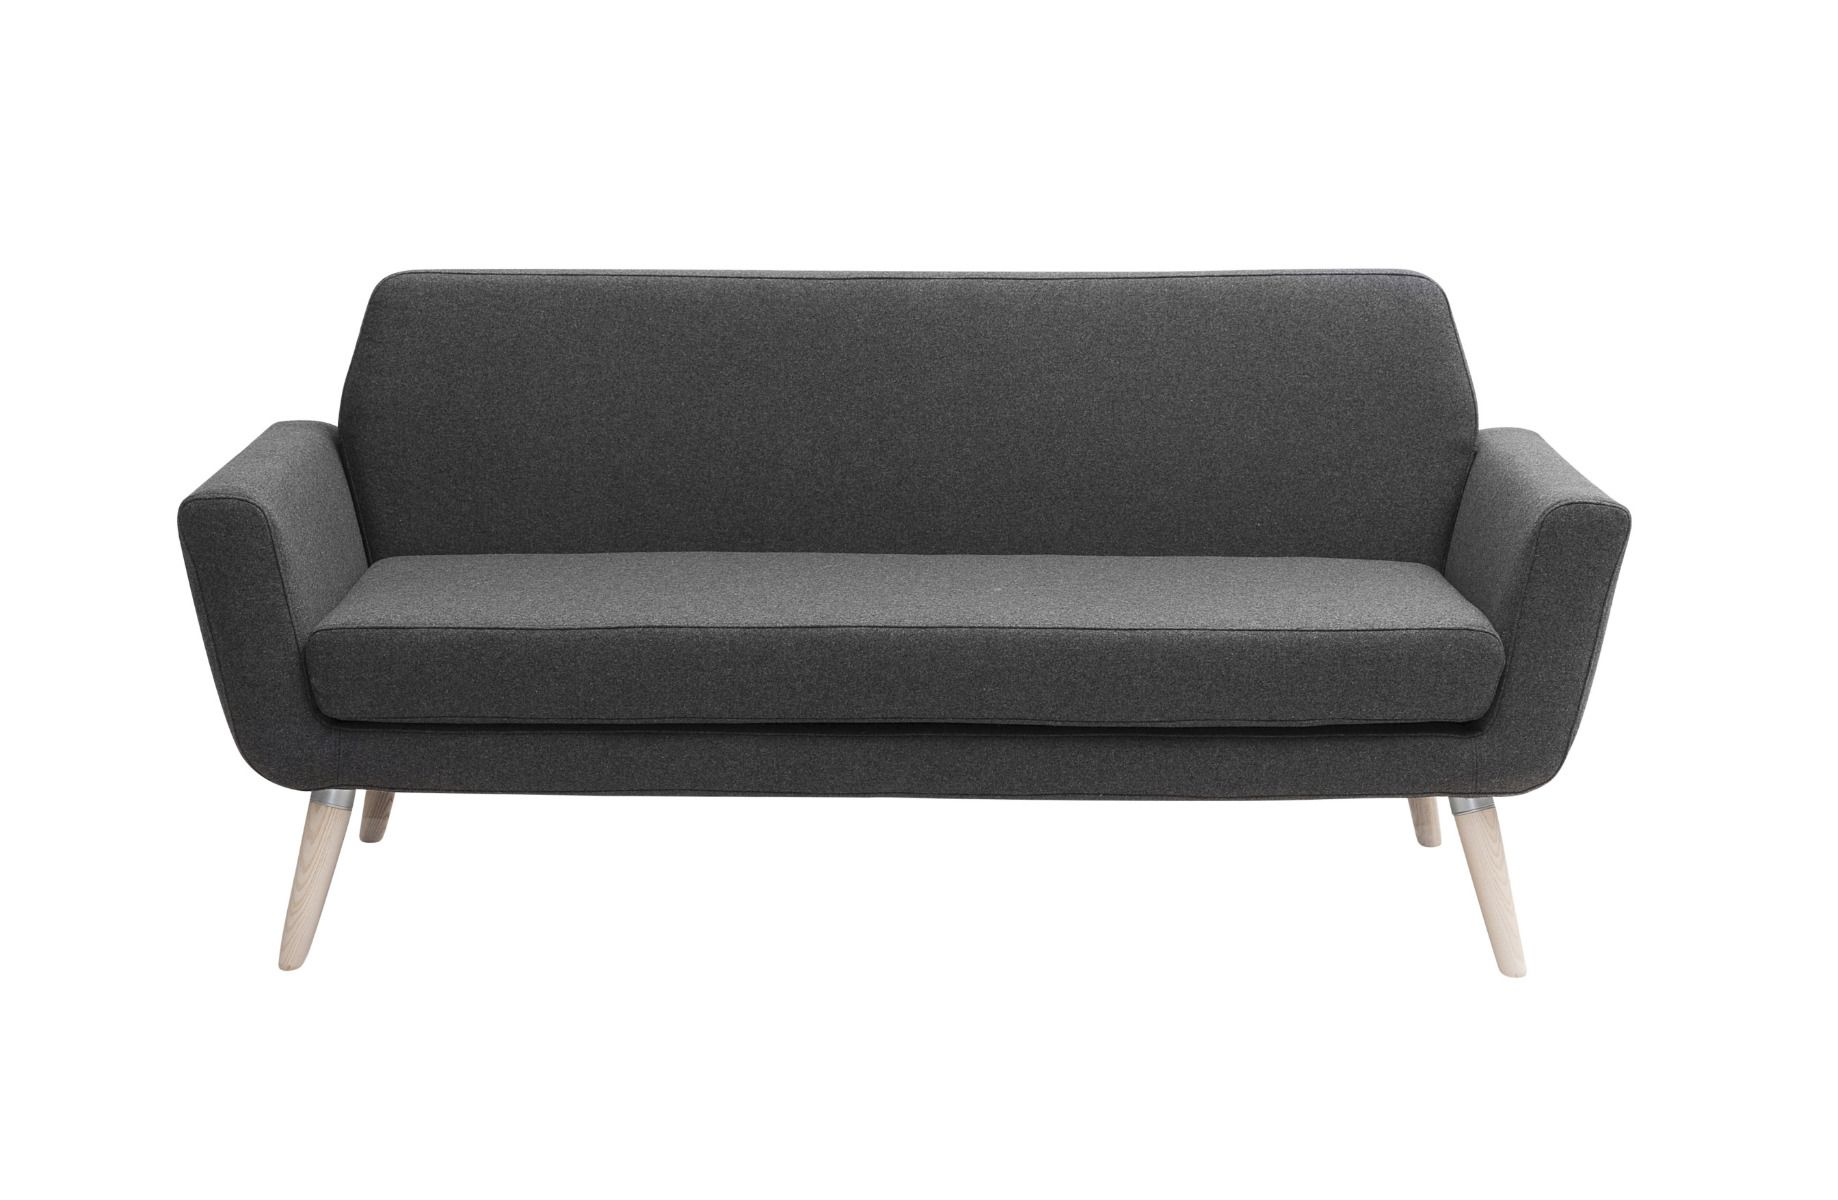 Softline Schlafsofa Scope Sofa